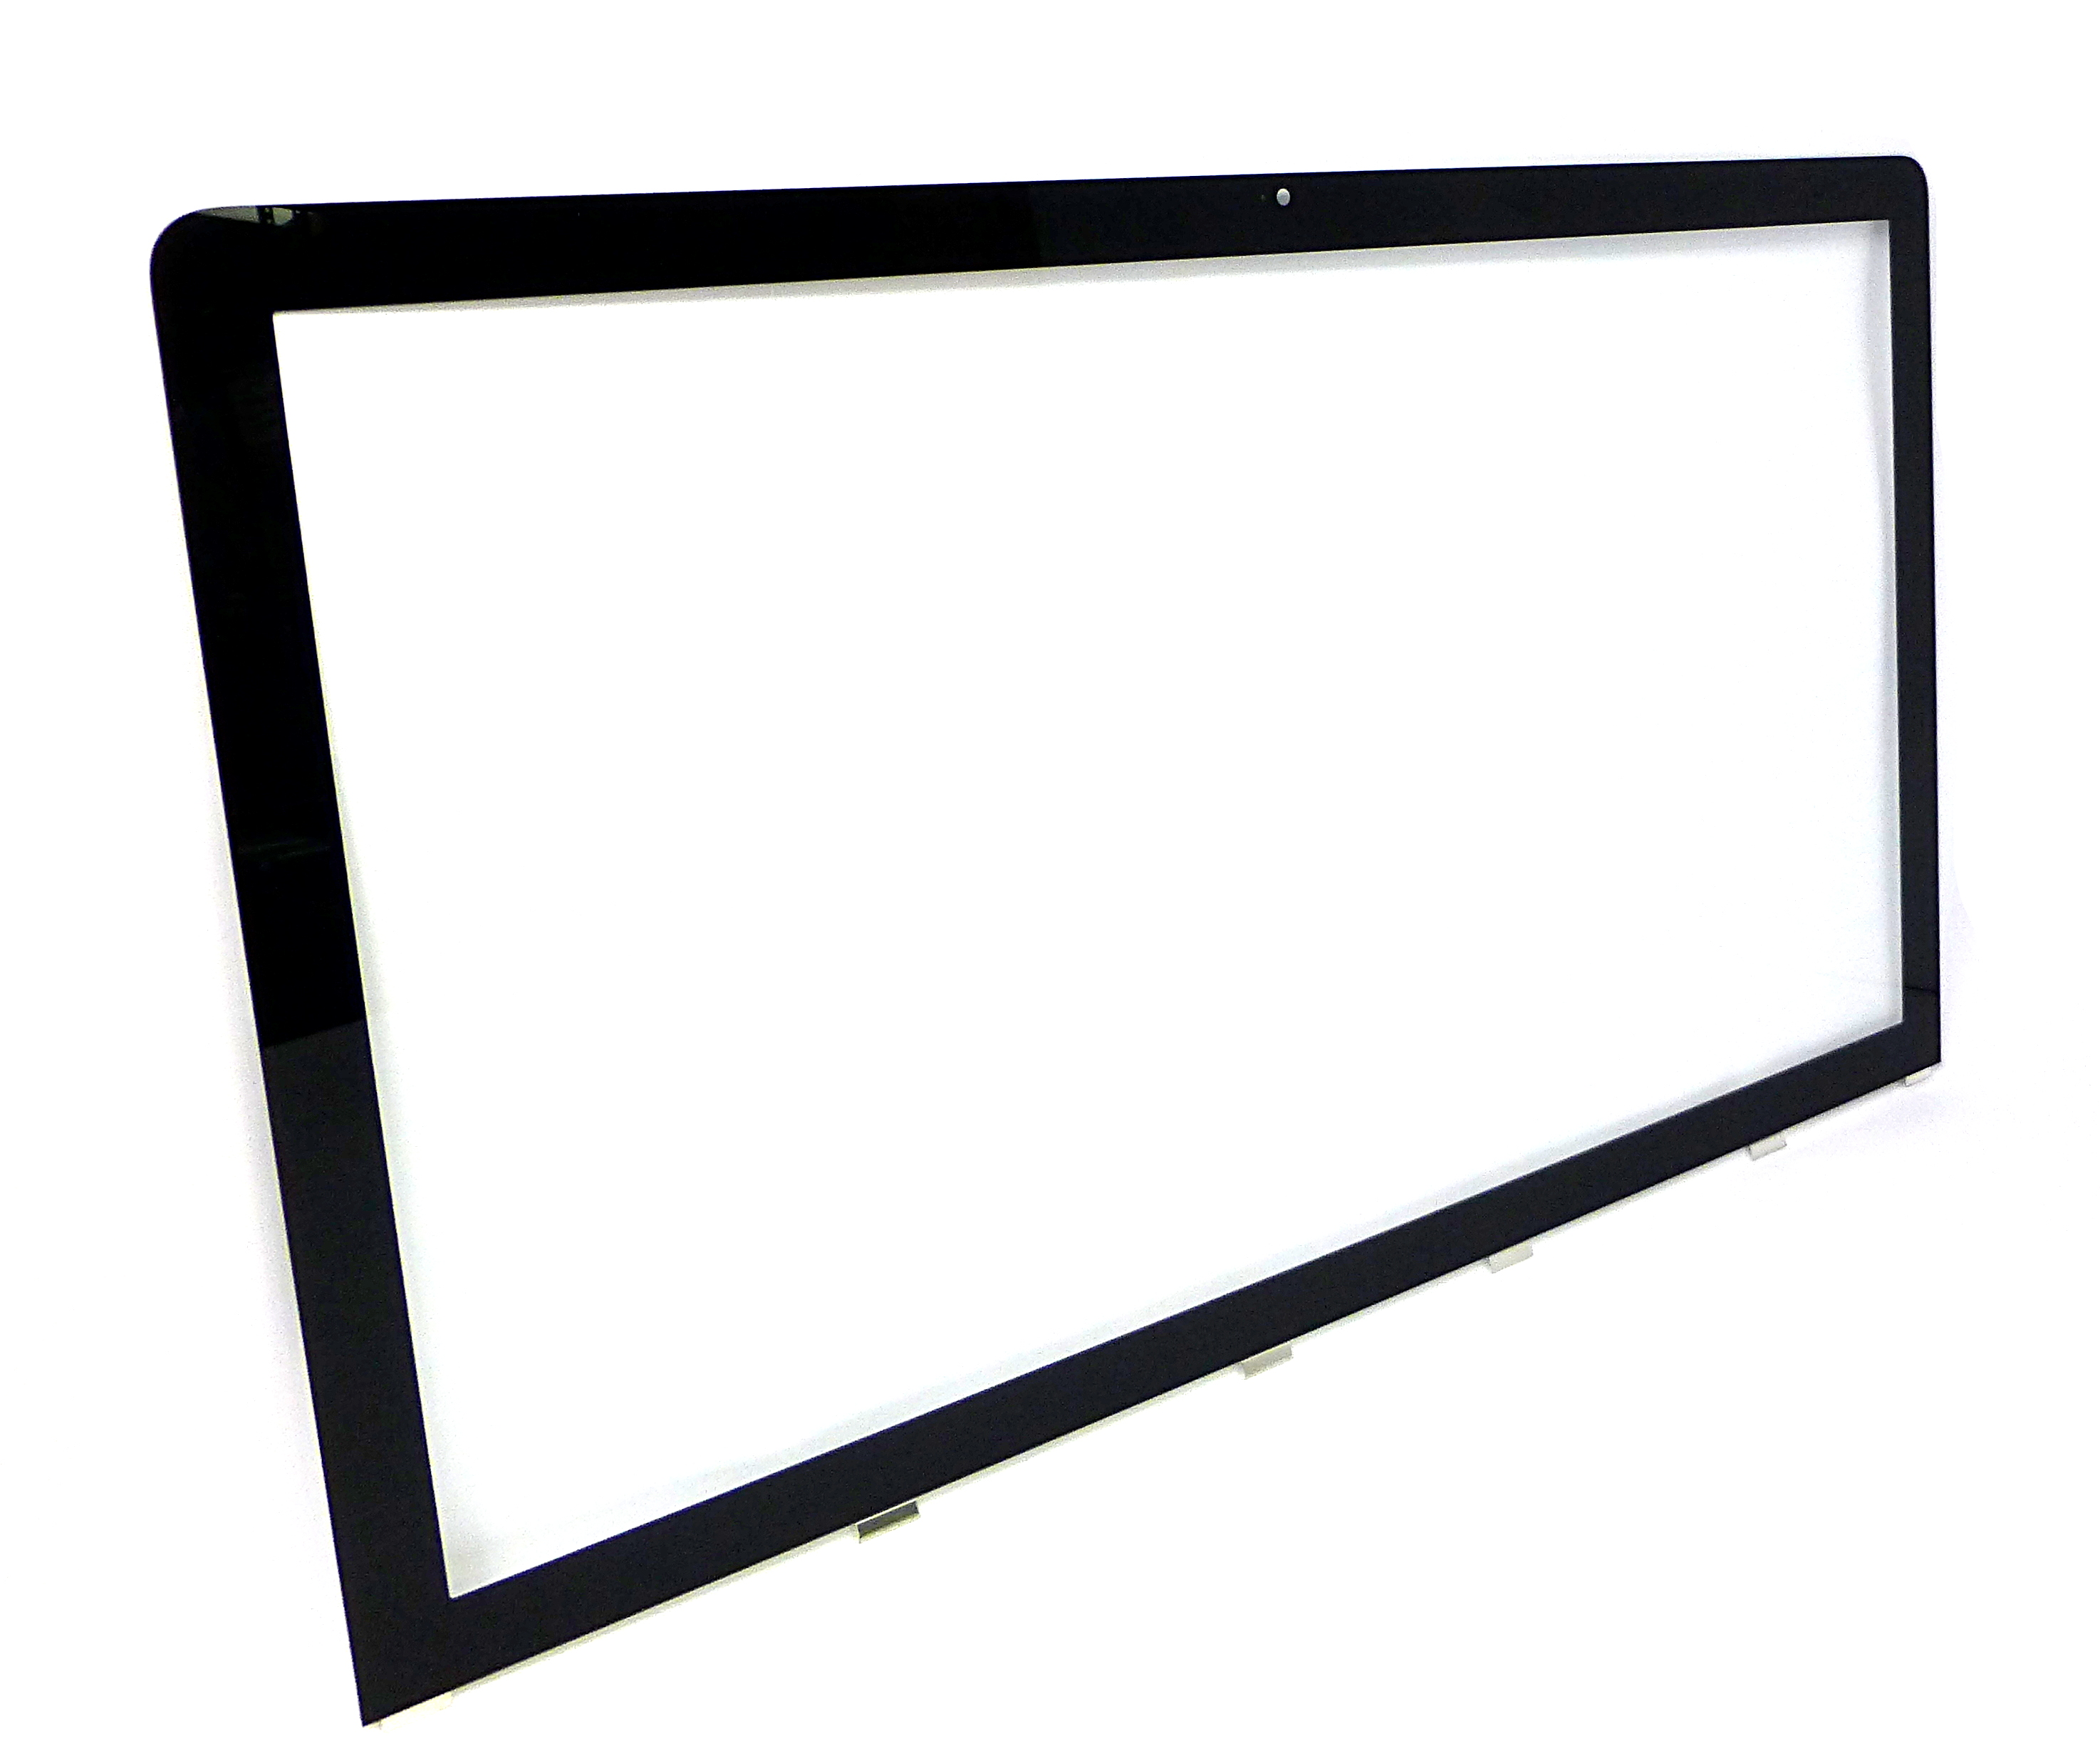 810-3557 Apple Front Glass Panel /f iMac 27-Inch (Mid-2011) A1312 (EMC 2429)